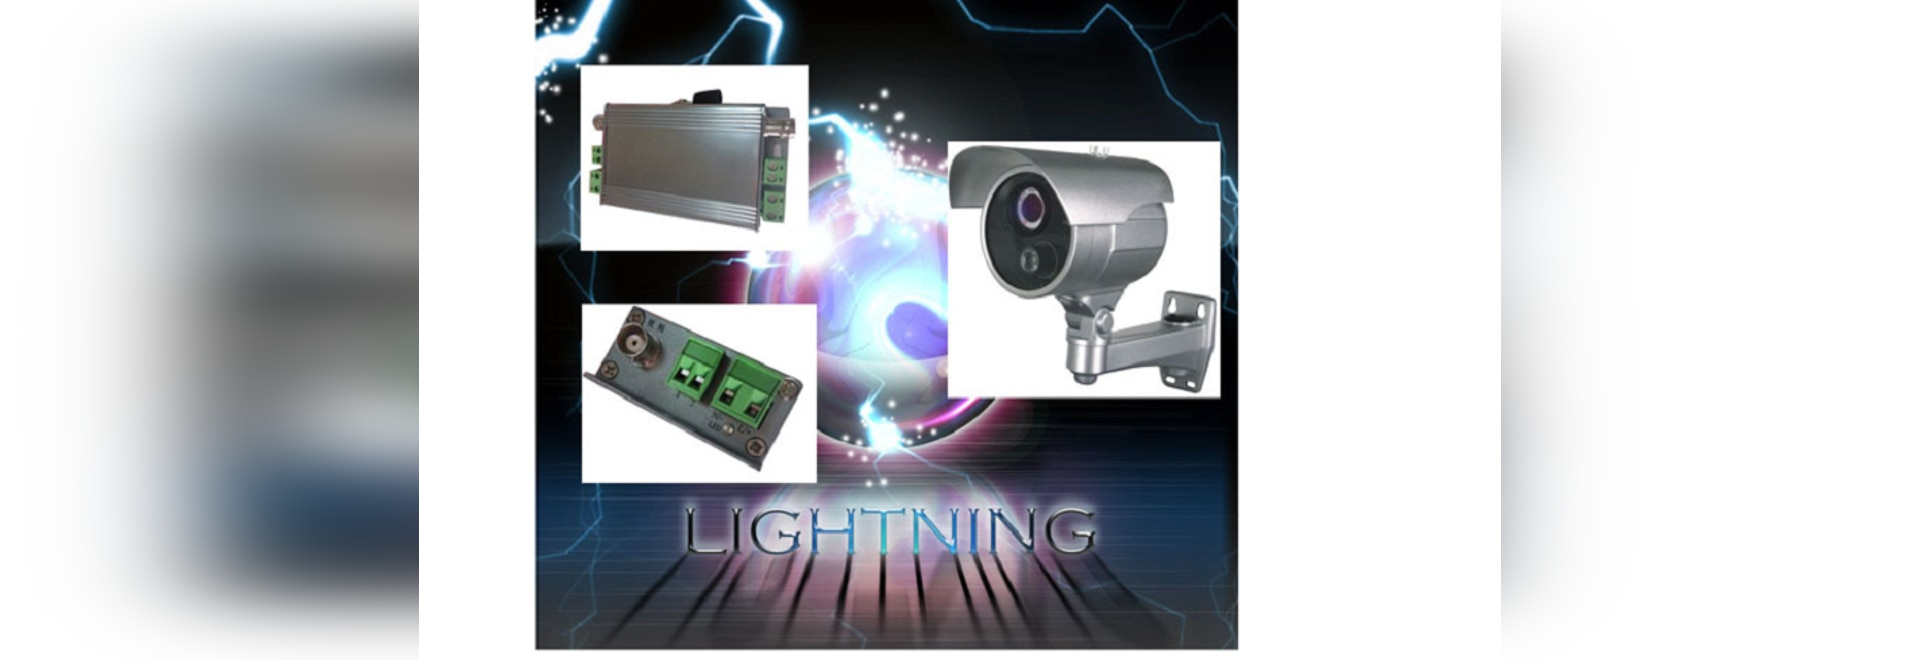 New product - video, control and power surge protector